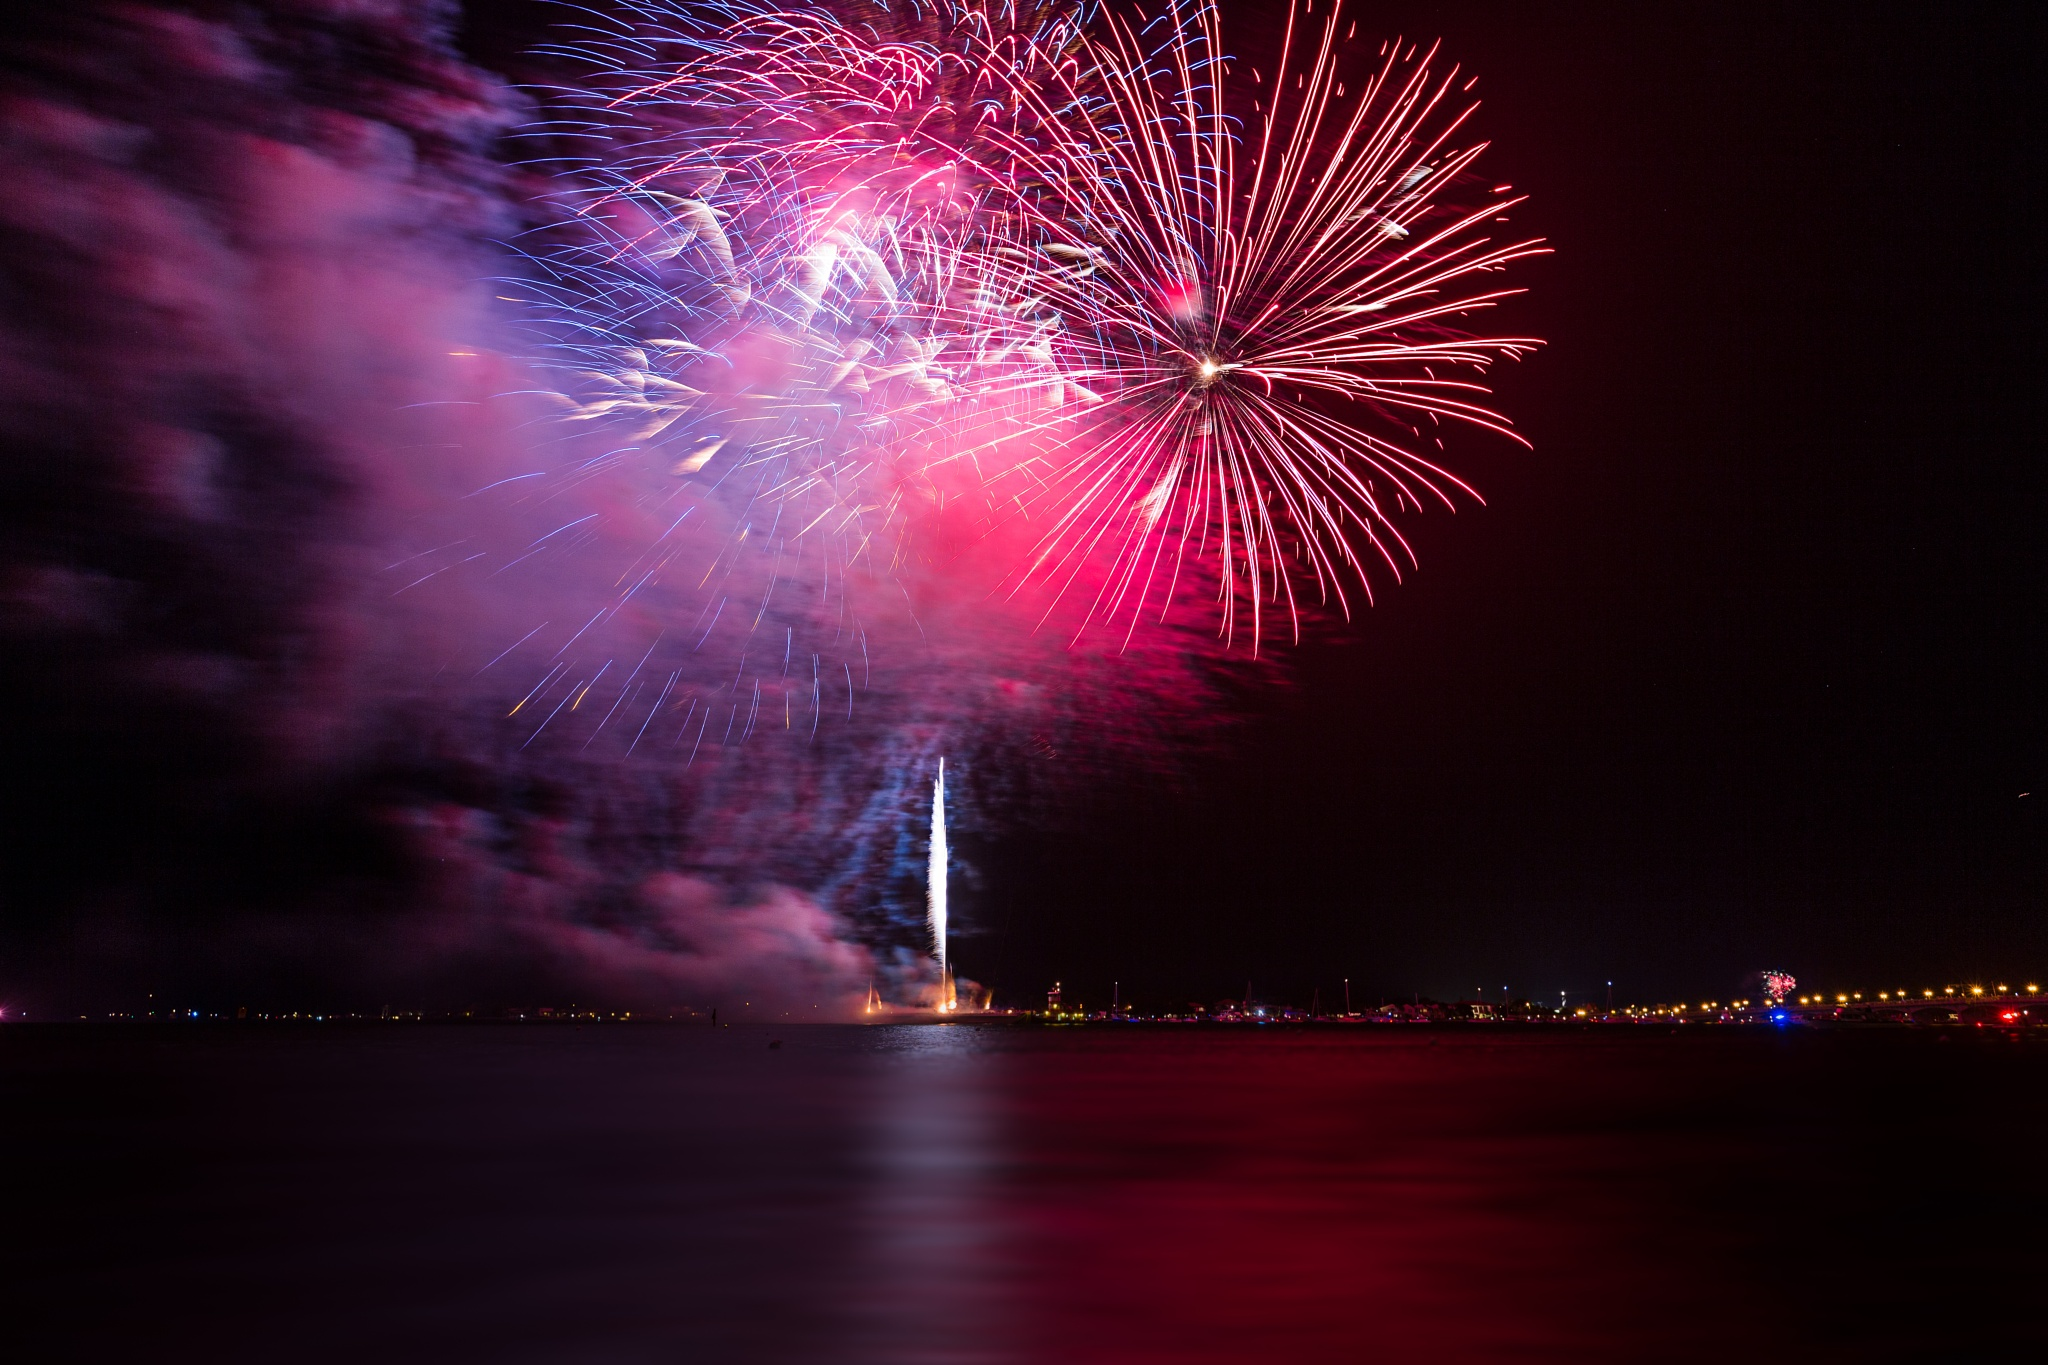 Fireworks over Matanzas Bay 4 by Bryan L. Williams